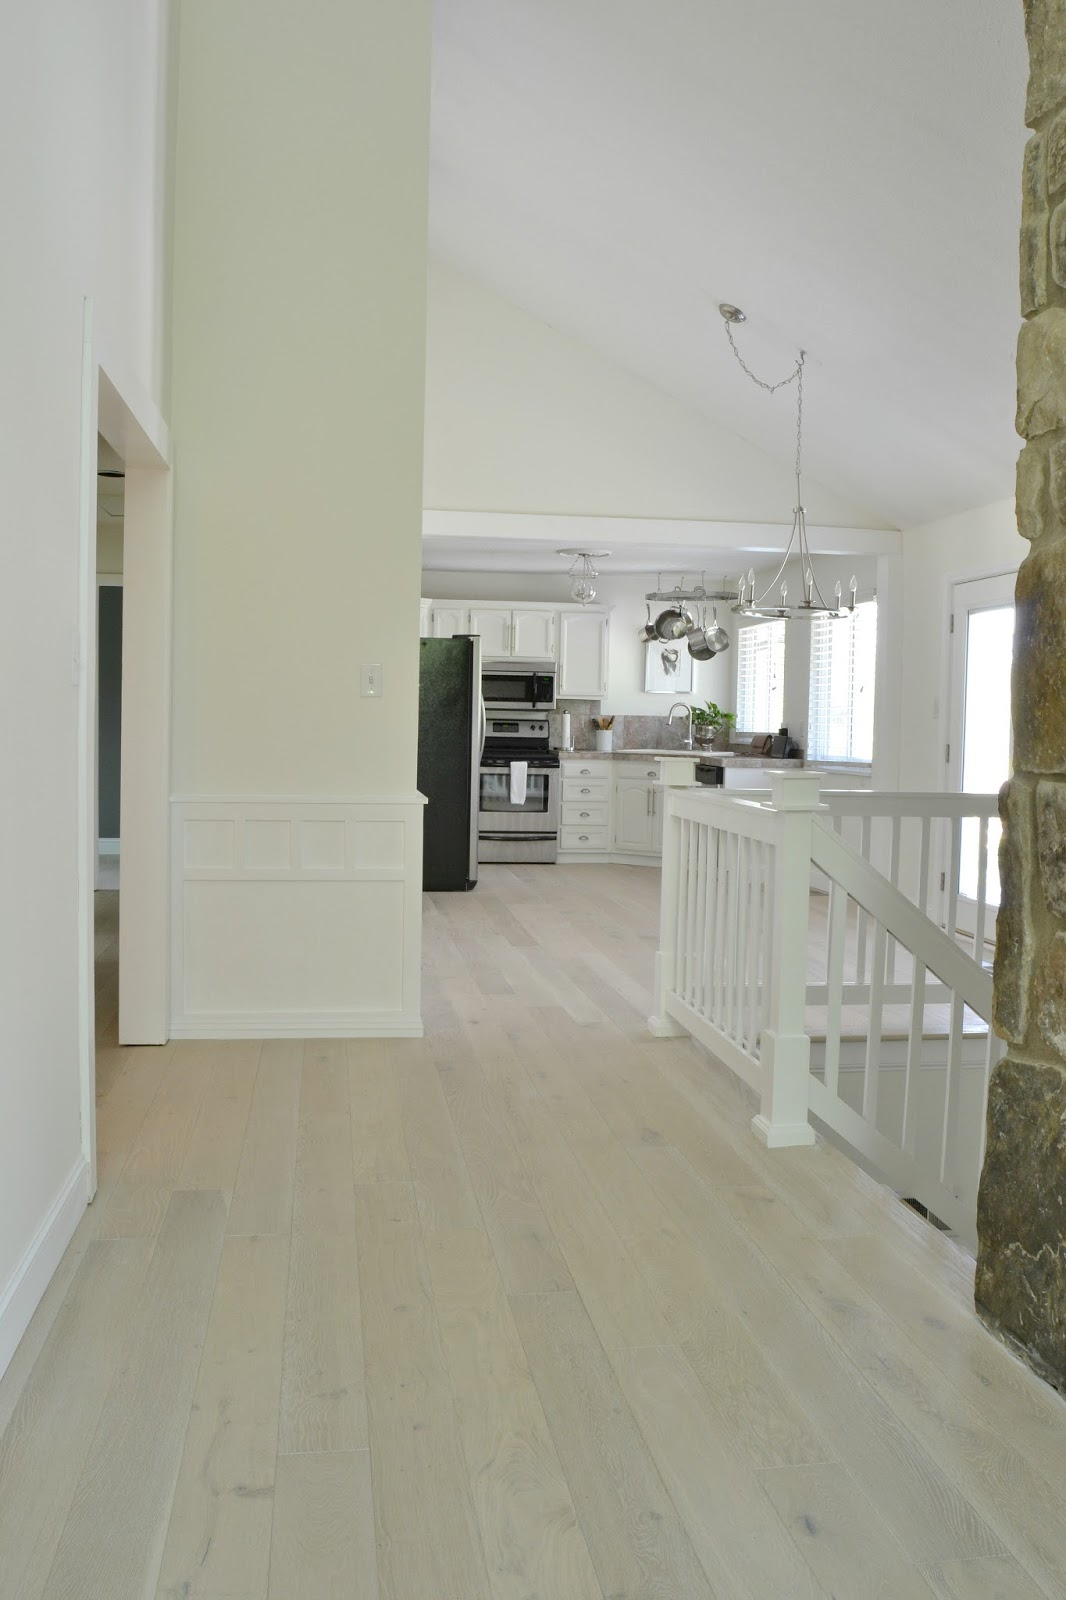 LiveLoveDIY: Our New White-Washed Hardwood Flooring (and why we had to rip  out the old ones after only a year!) - LiveLoveDIY: Our New White-Washed Hardwood Flooring (and Why We